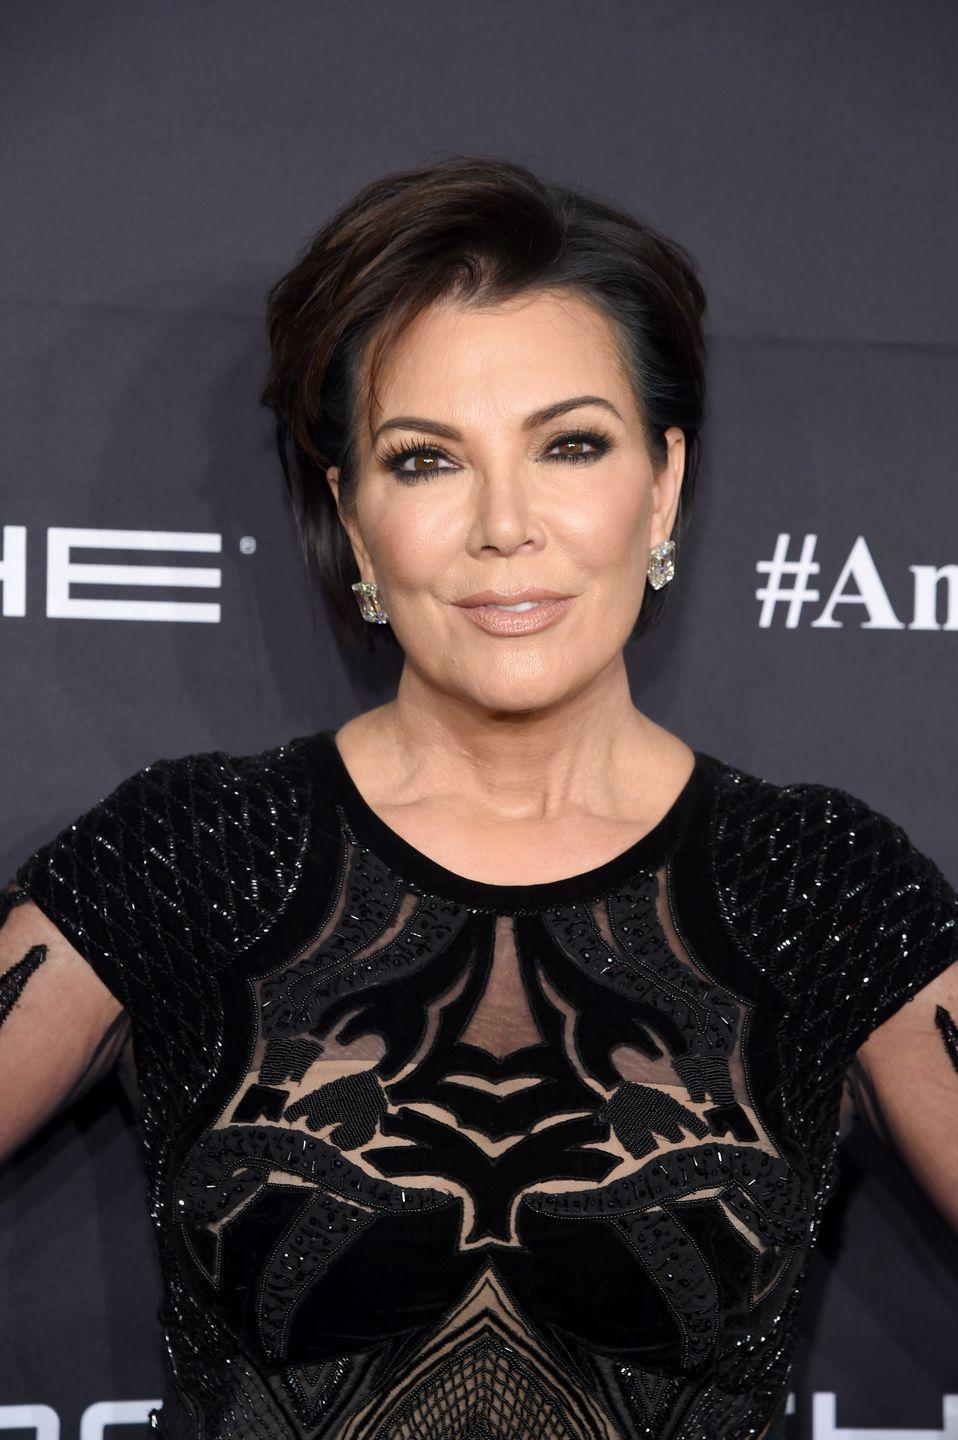 <p>The matriarch of the Kardashian-Jenner clan documented a facelift on <em>Keeping up with the Kardashians</em> in 2011. She said she got the procedure before her daughter Kim Kardashian's second wedding.</p>